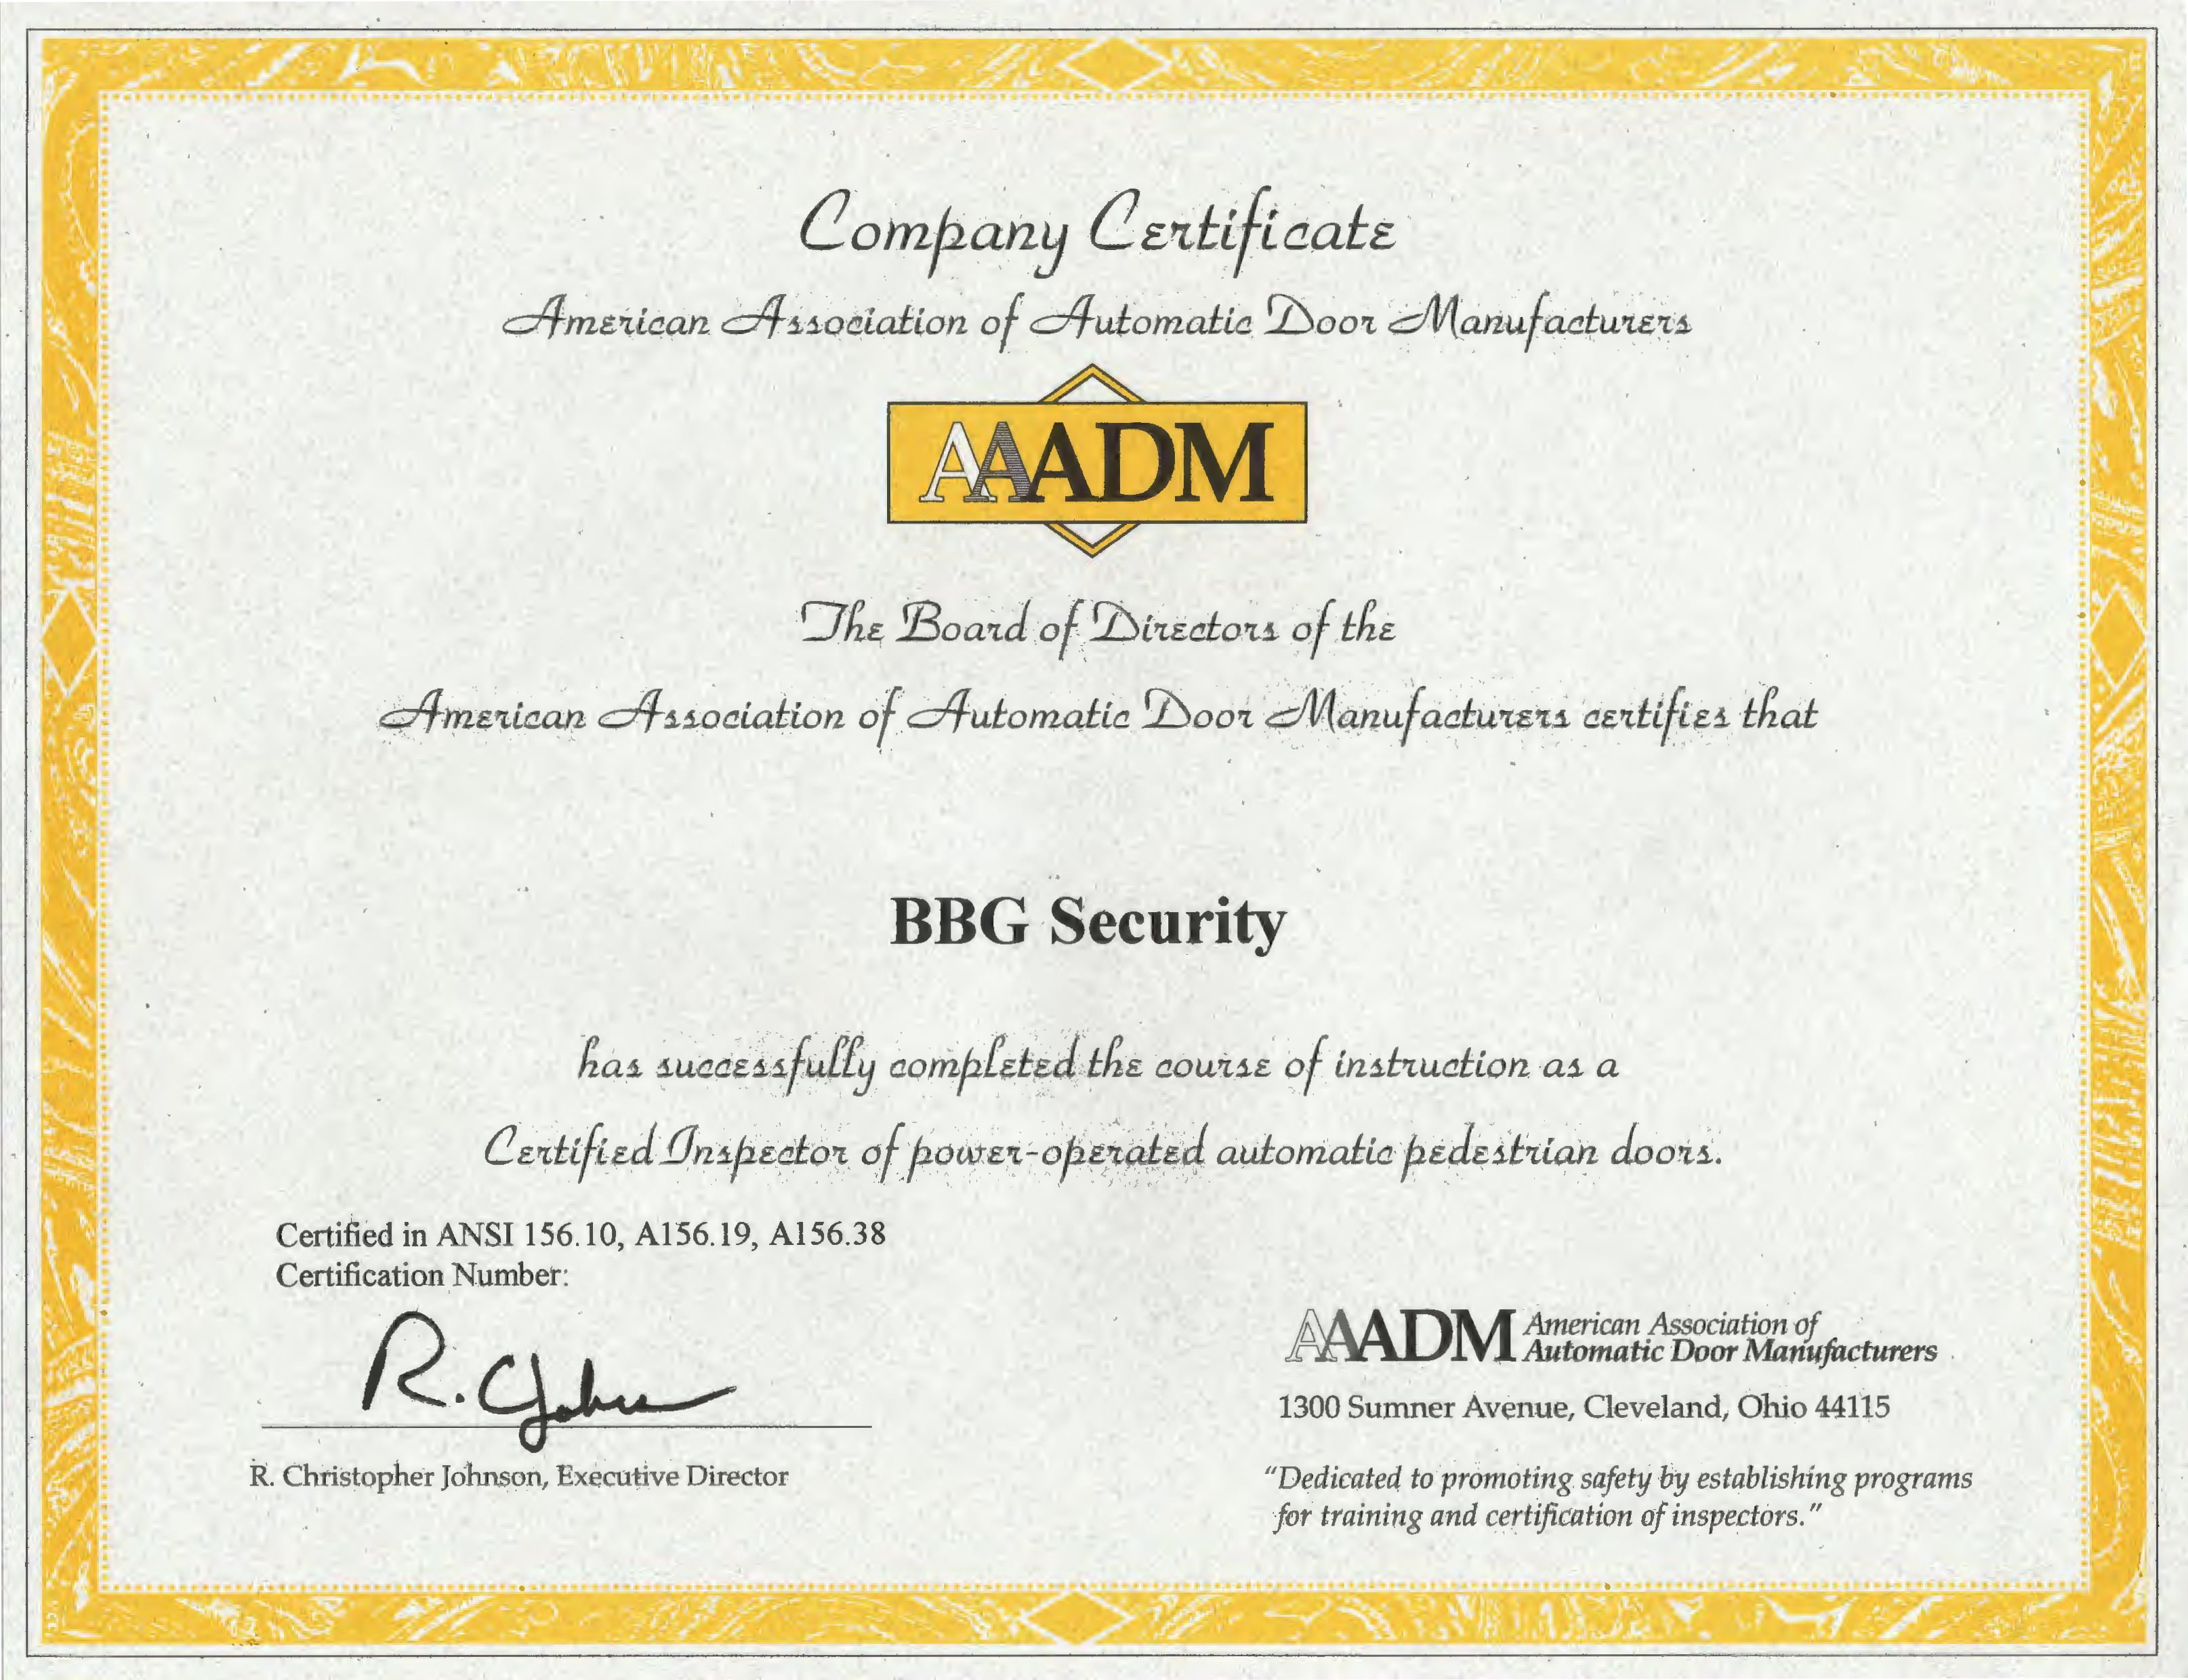 BBG Security Are AAADM Certified